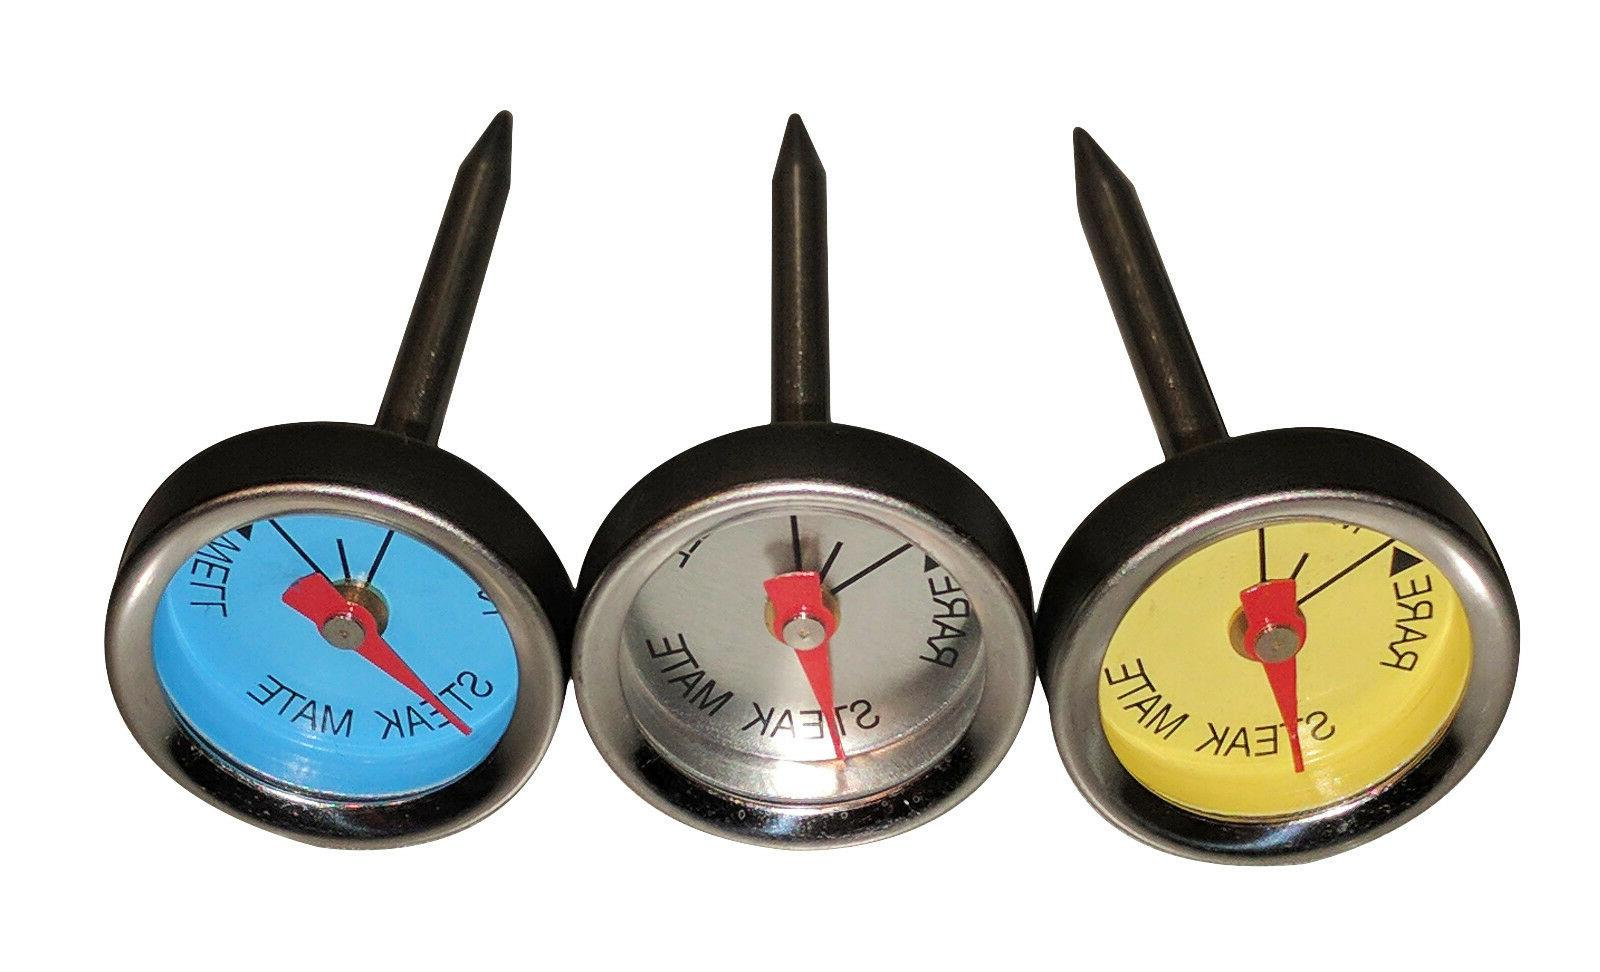 New Set of 3 Steak Mate Mini Steak Thermometers Stainless St